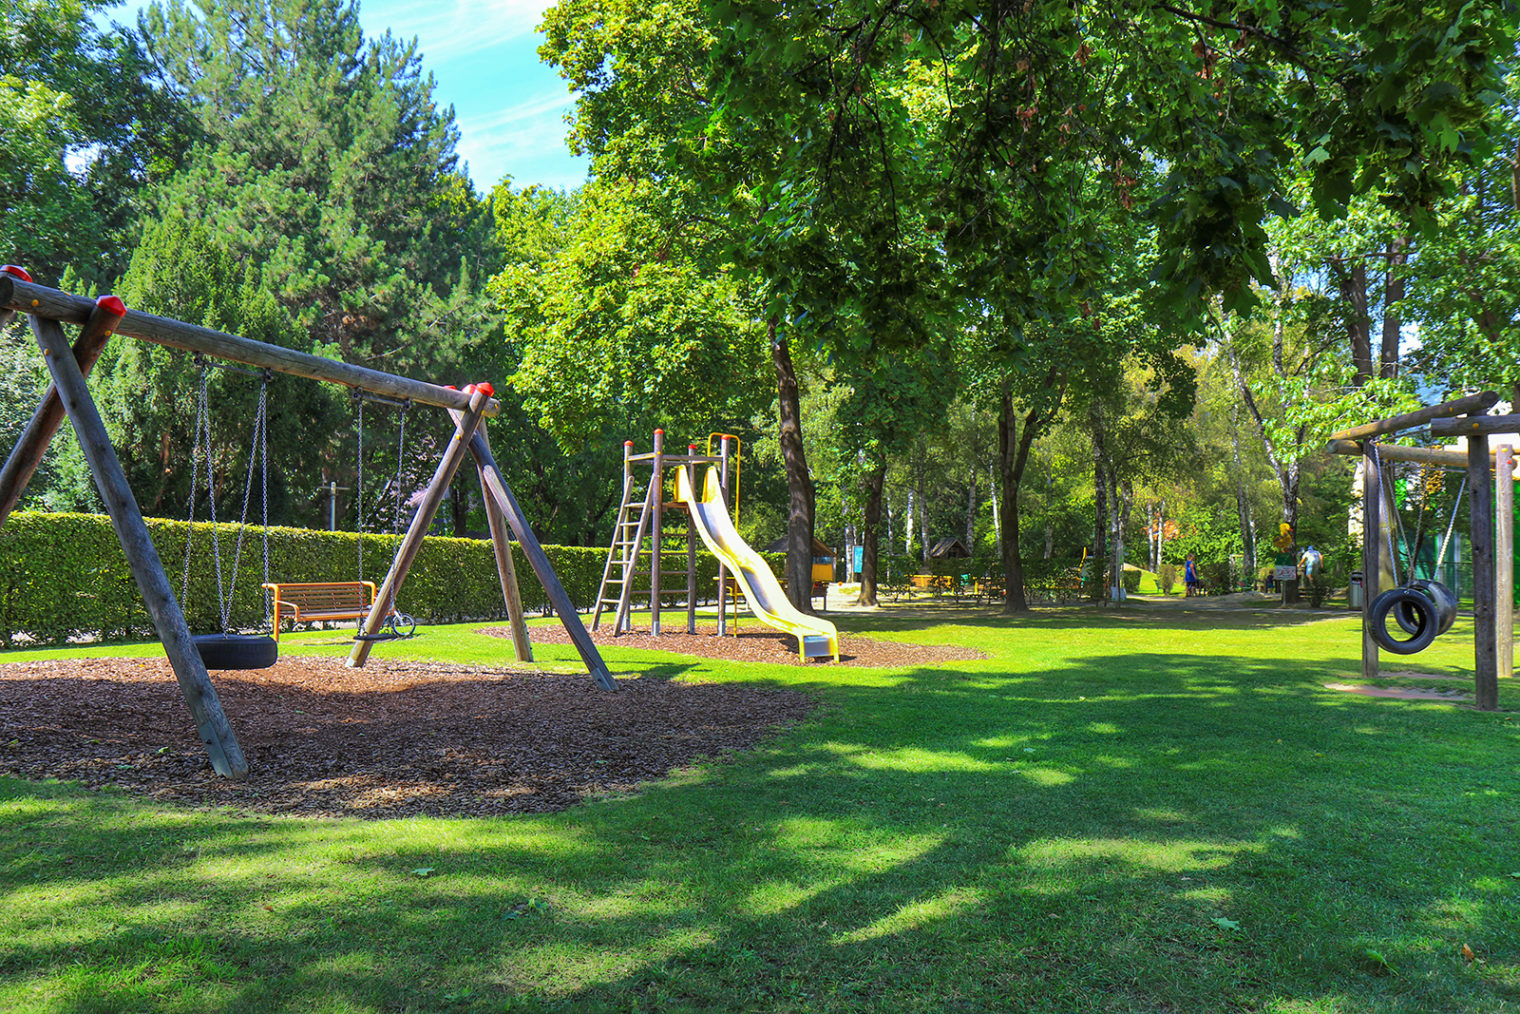 Play equipment at the Glacis playground